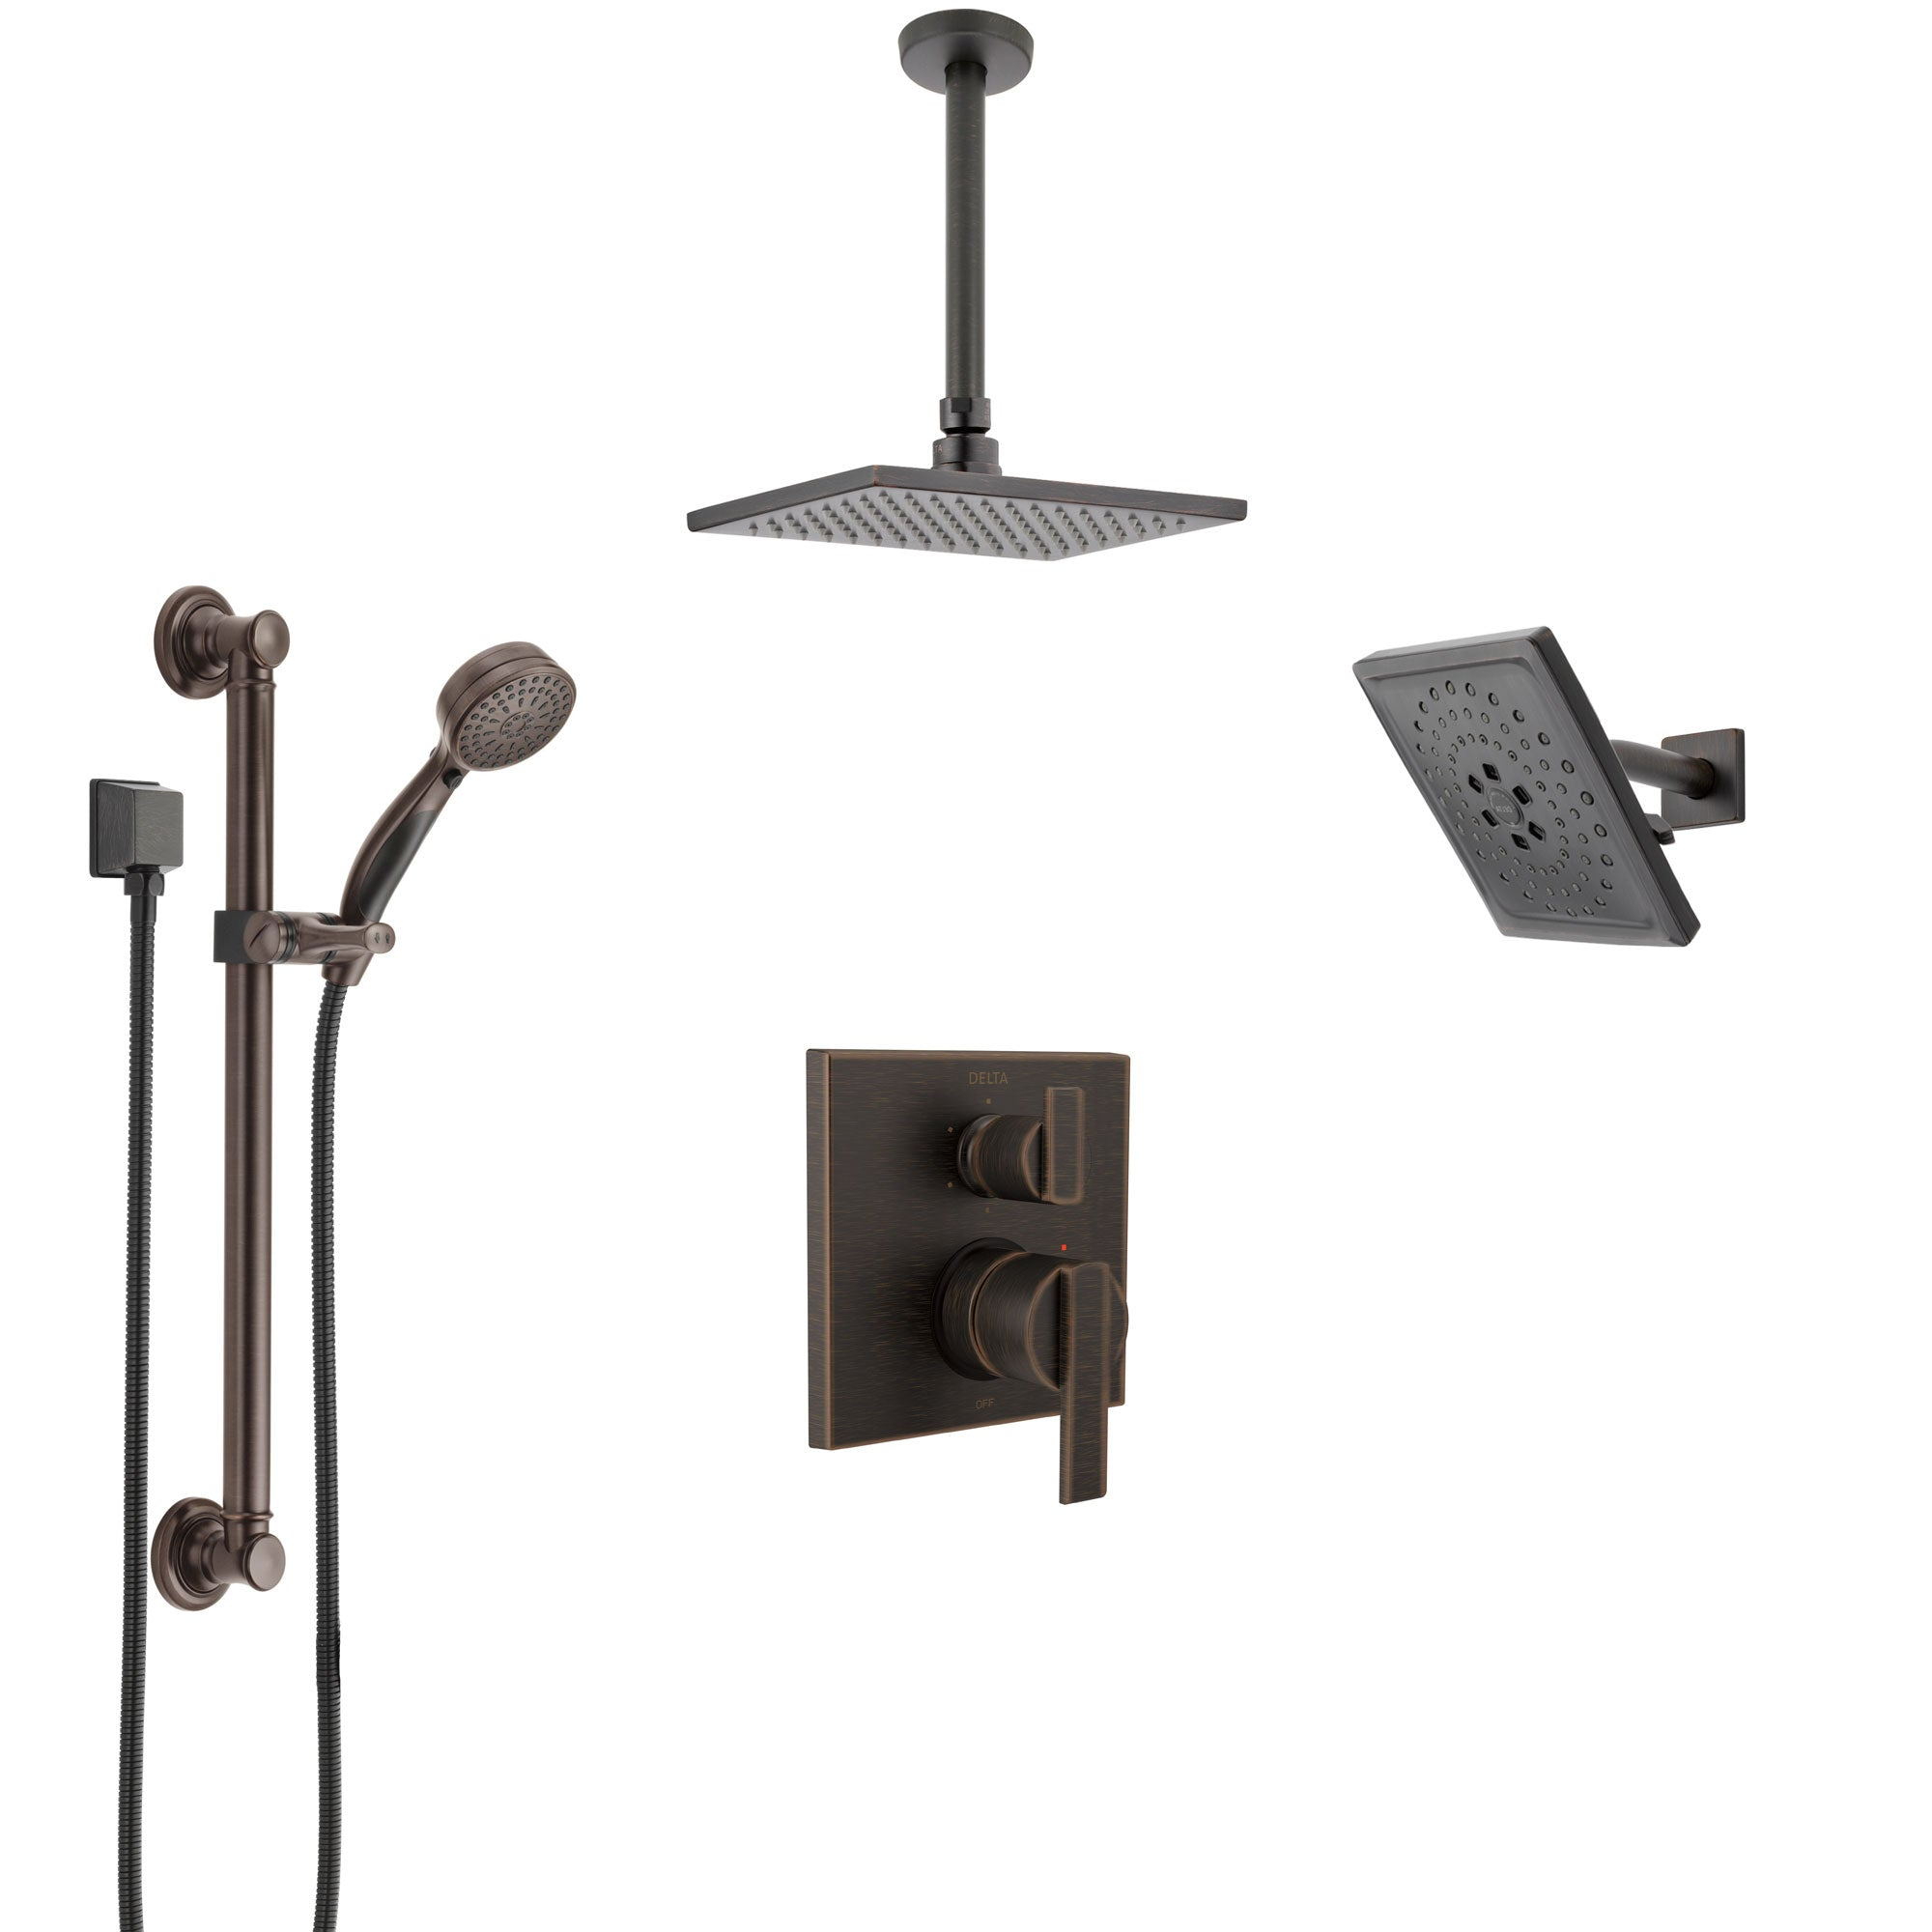 Delta Ara Venetian Bronze Shower System with Control Handle, Integrated Diverter, Showerhead, Ceiling Showerhead, and Grab Bar Hand Shower SS24967RB8